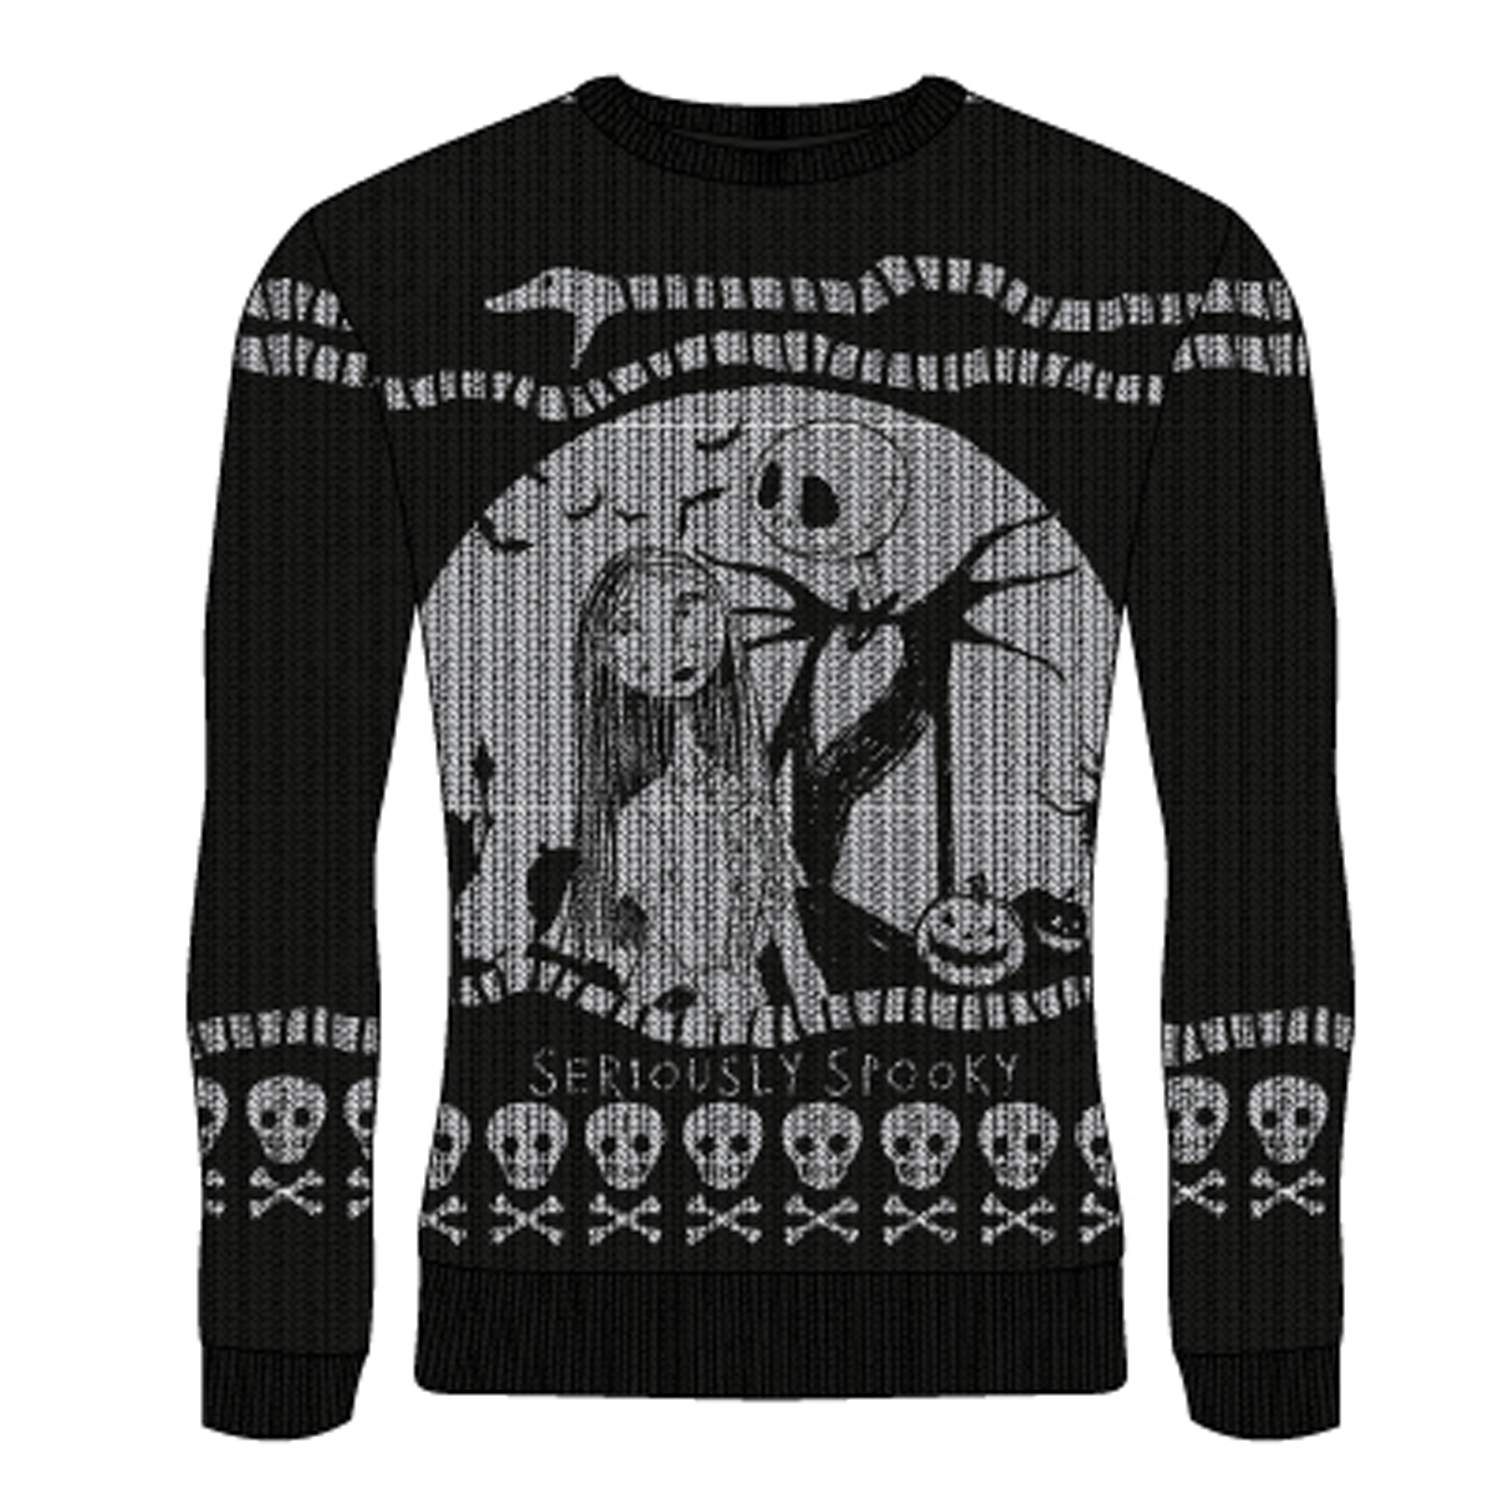 MAGLIONE UNISEX NIGHTMARE BEFORE CHRISTMAS: SERIOUSLY SPOOKY TG